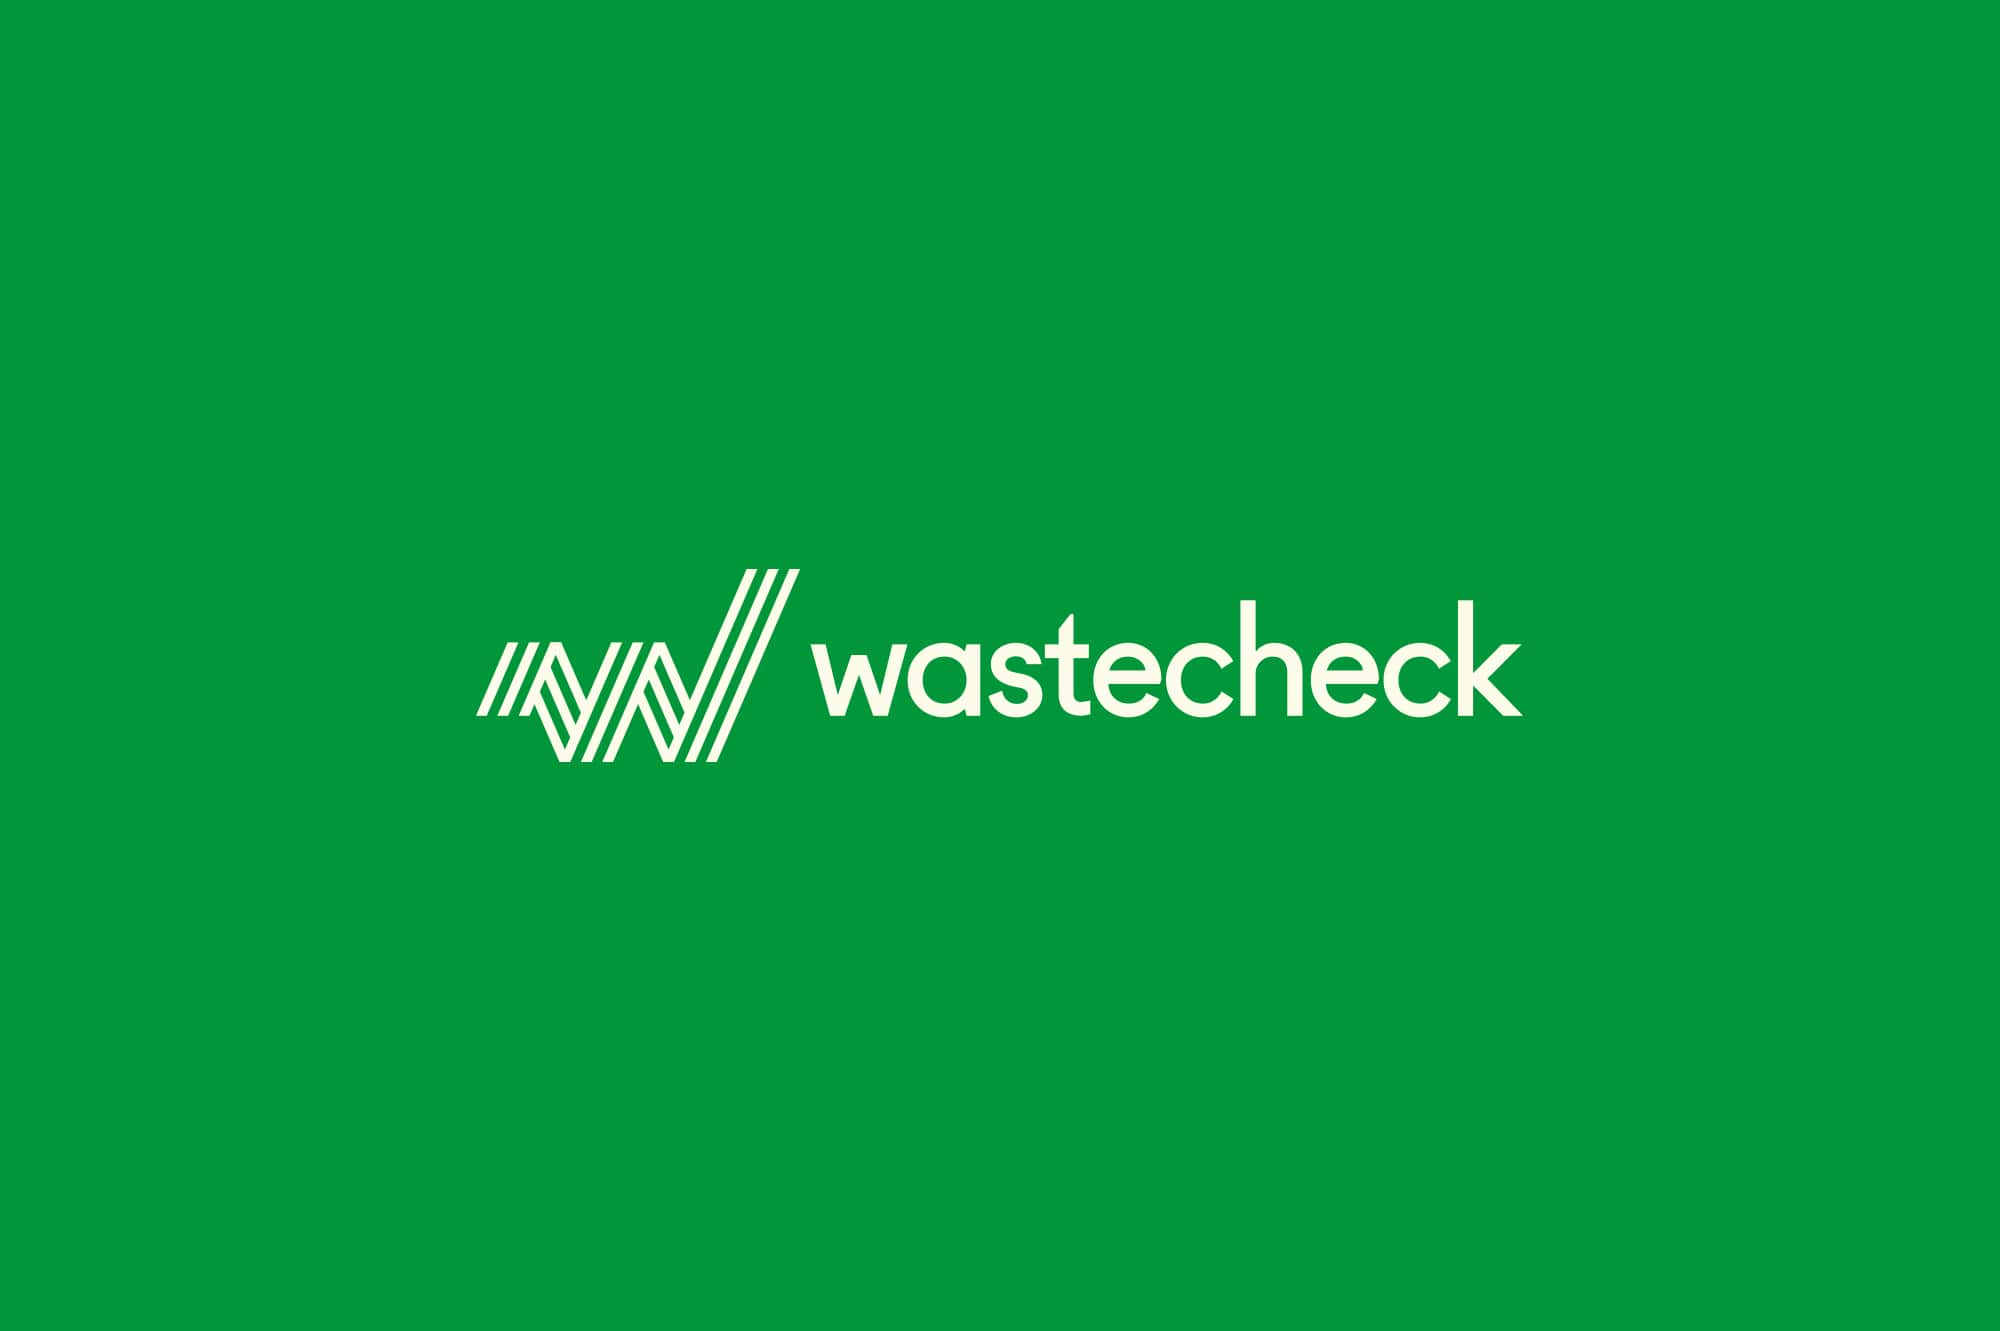 Wastecheck Logo Forest Green Background